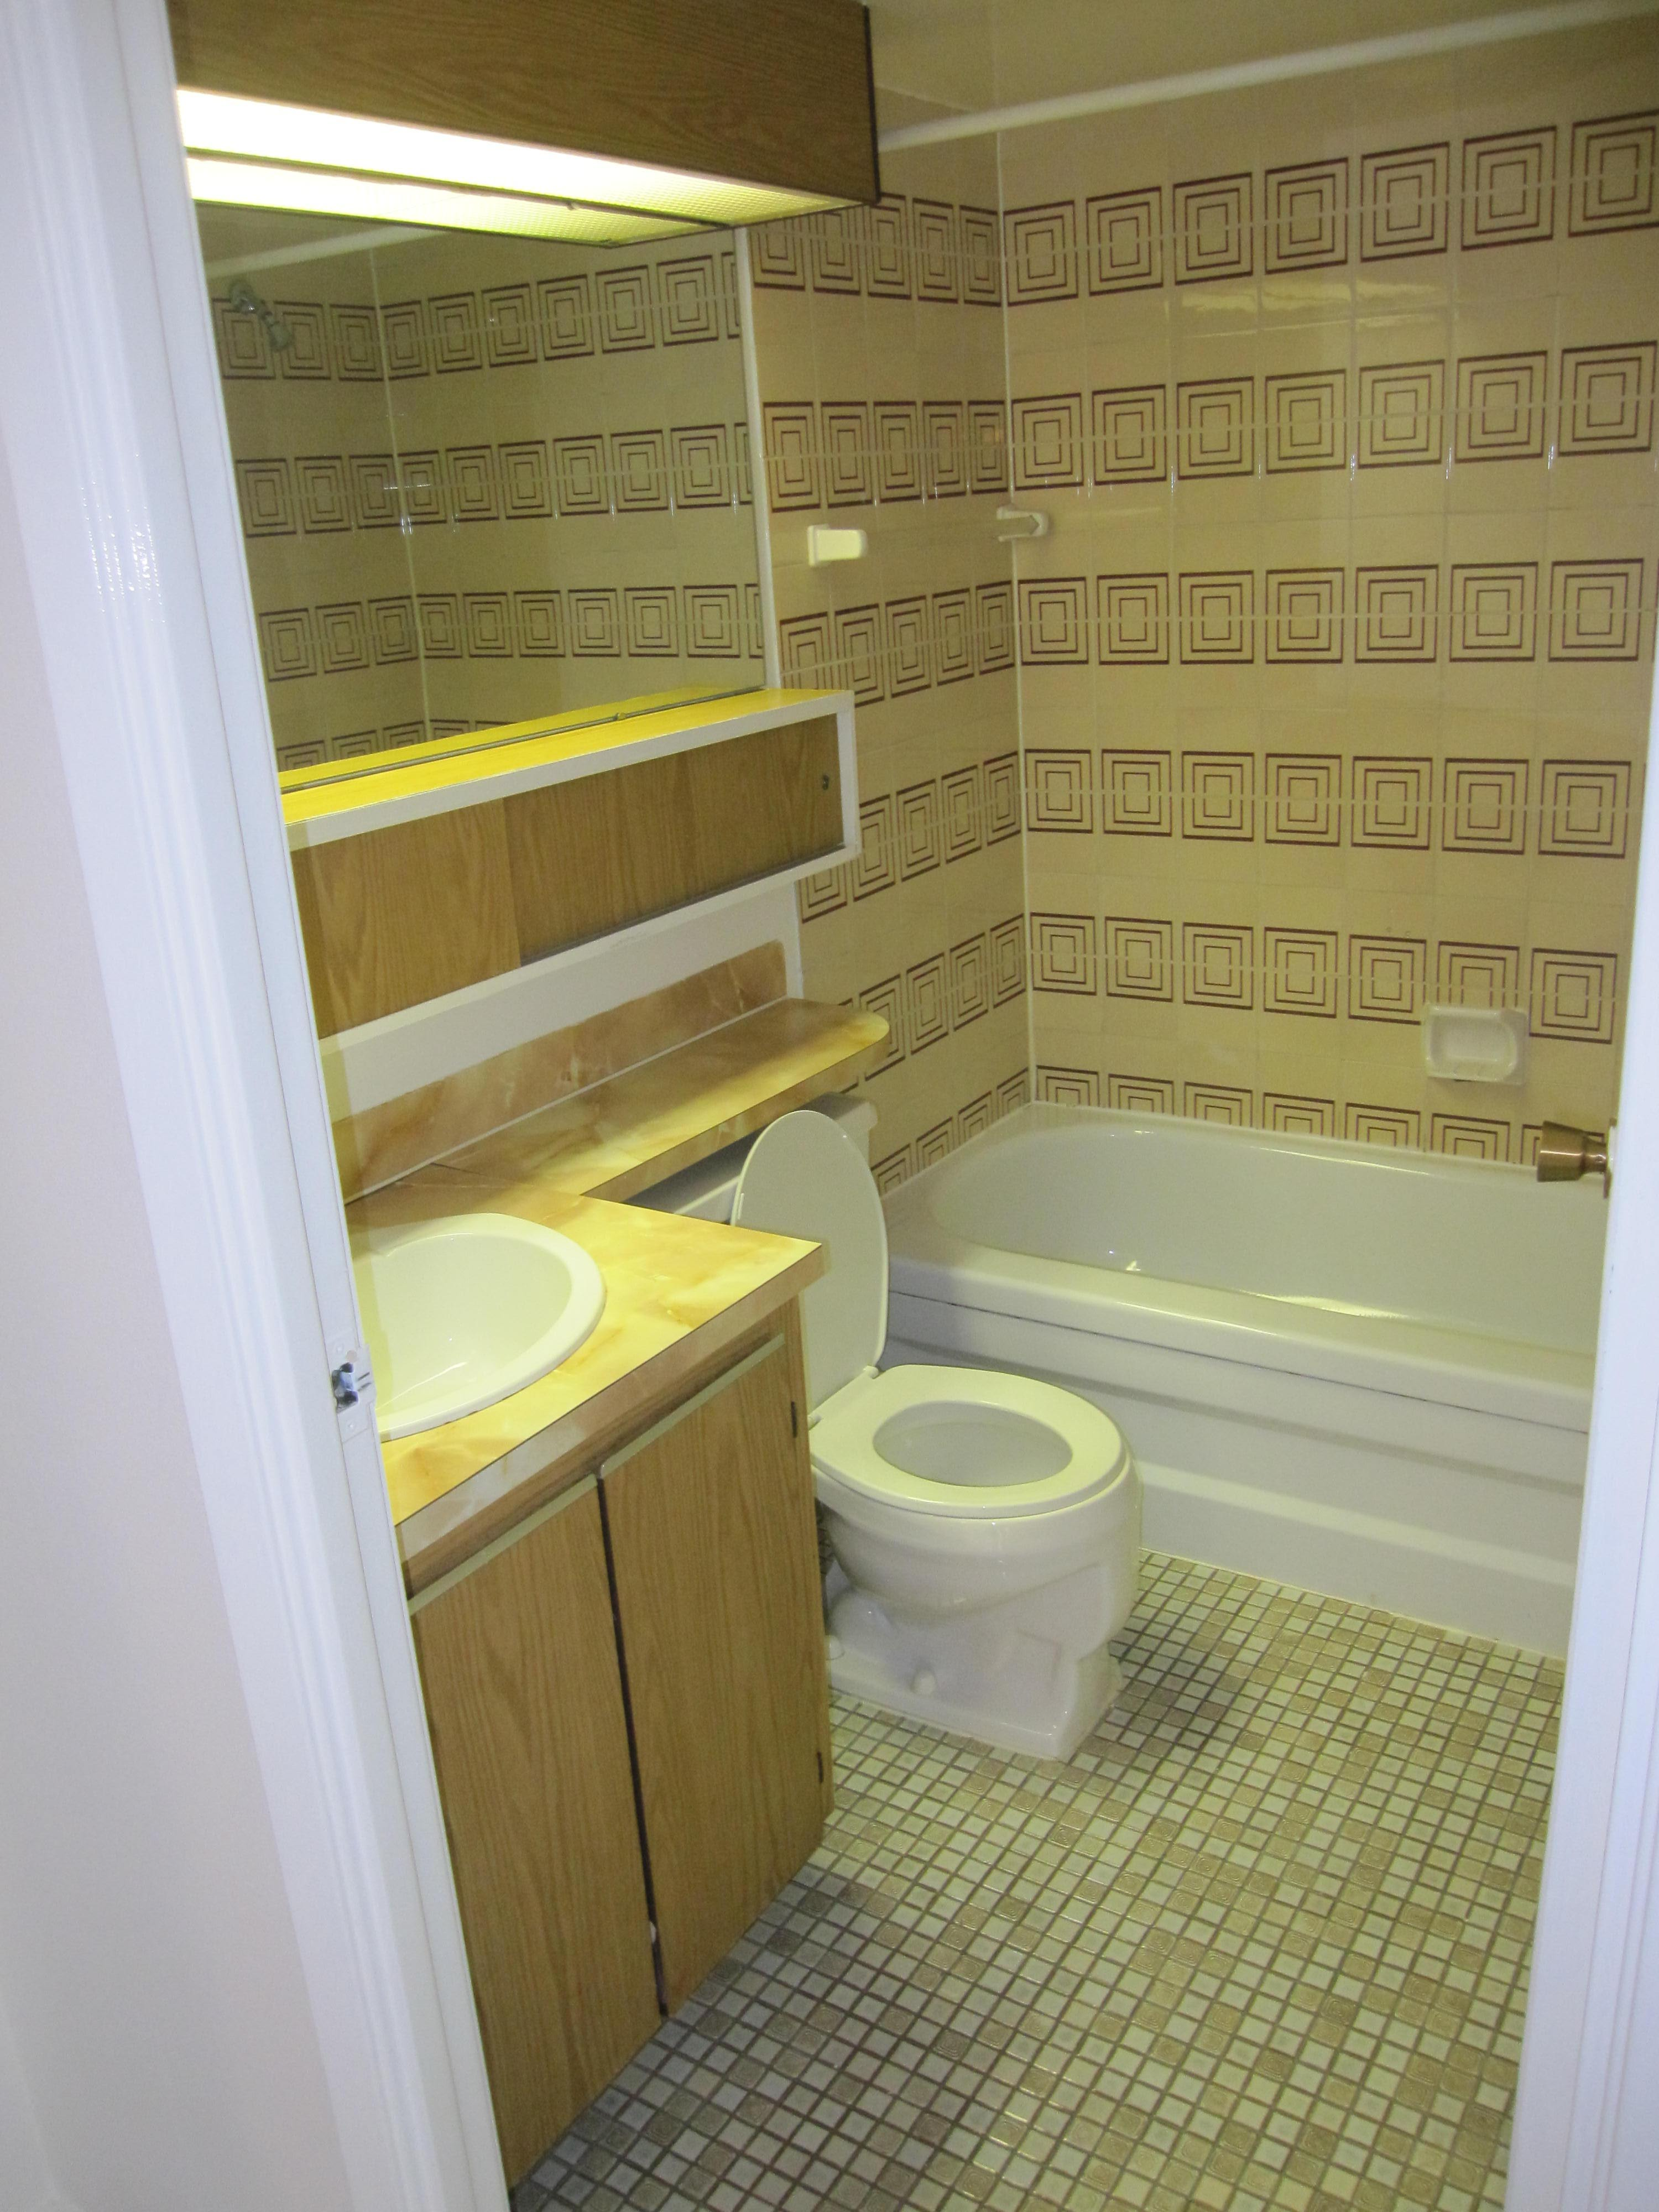 2 bedroom Apartments for rent in Cote-St-Luc at 6555 Kildare - Photo 04 - RentersPages – L19481